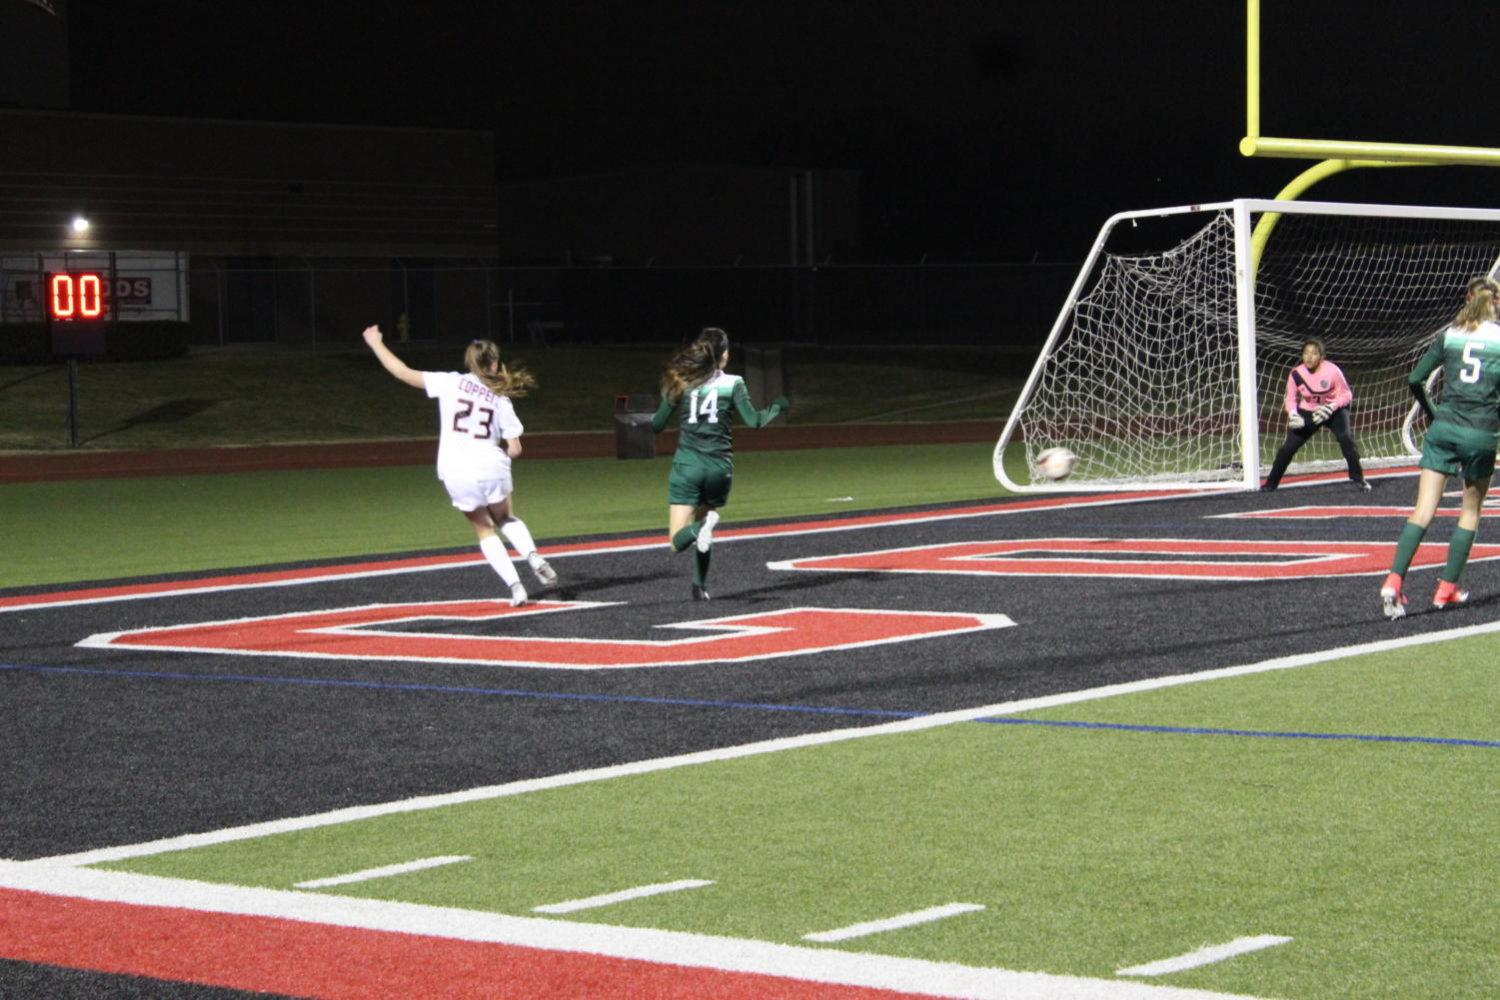 Coppell High School girls varsity soccer team went against Berkner High School on Tuesday night. Sophomore Haley Roberson stole the ball from the lady rams and tried to score with a powerful kick. Photo by Quyenh Phang.